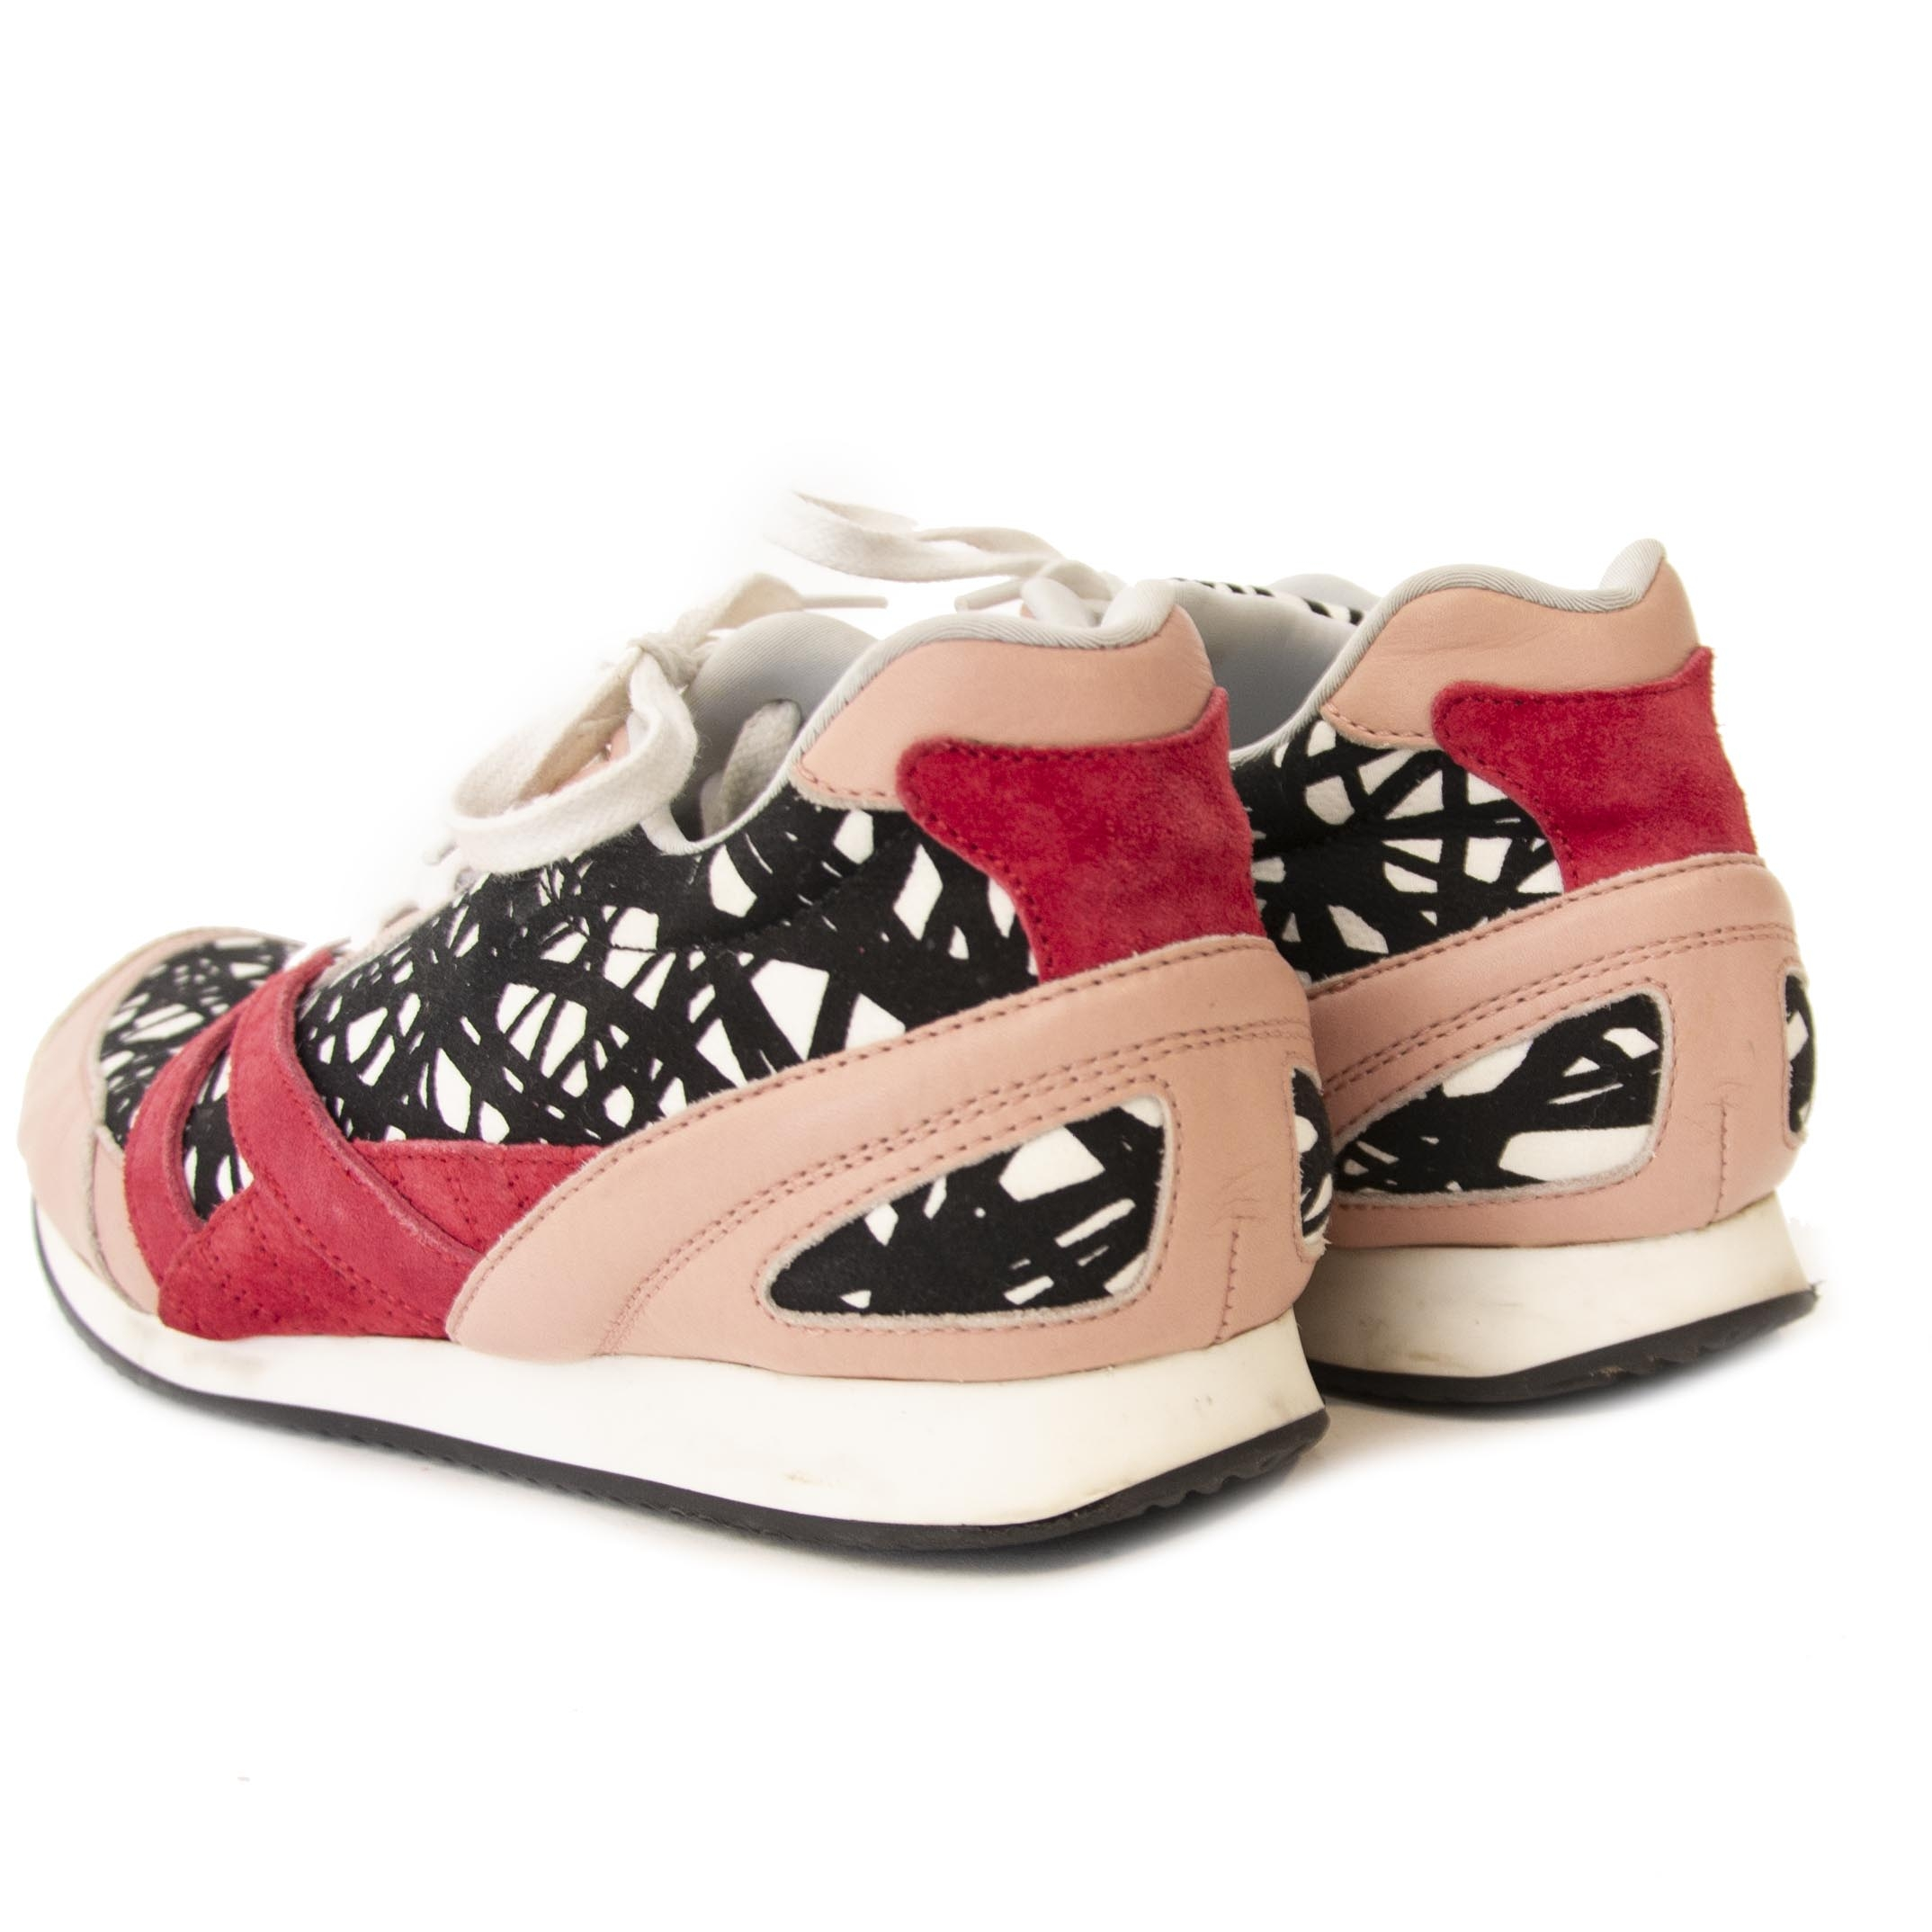 Buy authentic secondhand Balenciaga Abstract Sneakers for the right price at labellov.